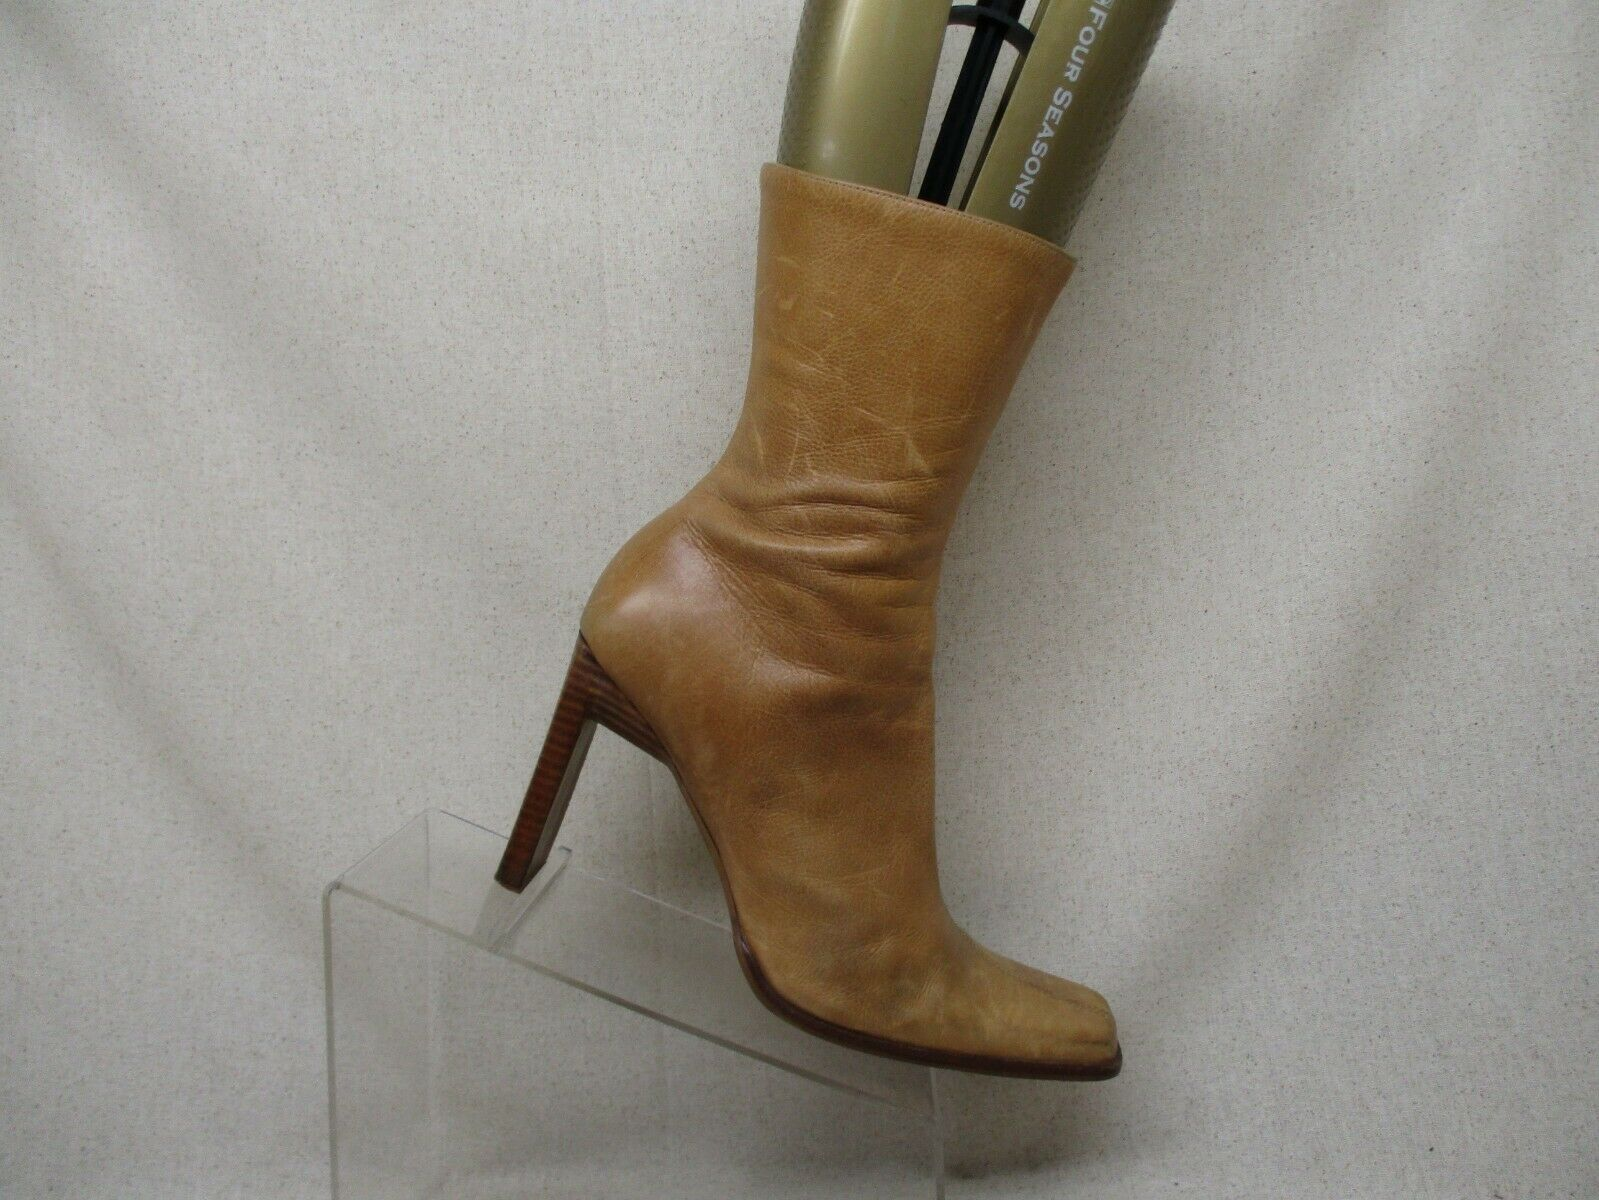 Steve Madden Brown Leather Side Zip High Ankle Fashion Boots Bootie Size 9.5 B